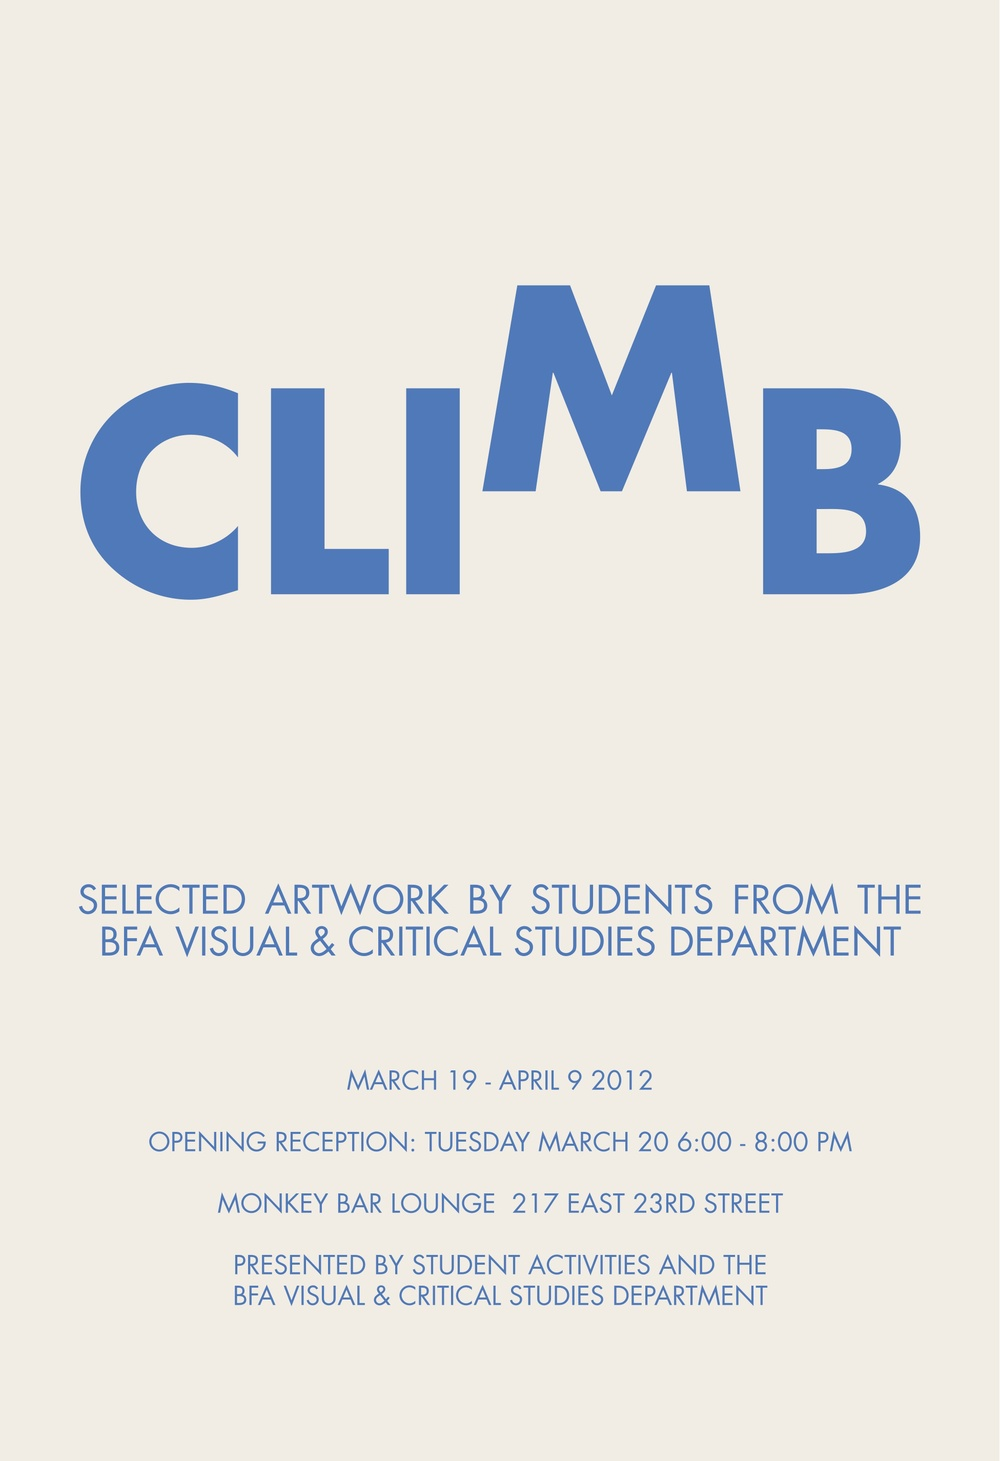 Poster for  CLIMB , a 2012 exhibition of artwork by students of the Visual & Critical Studies Department, School of Visual Arts